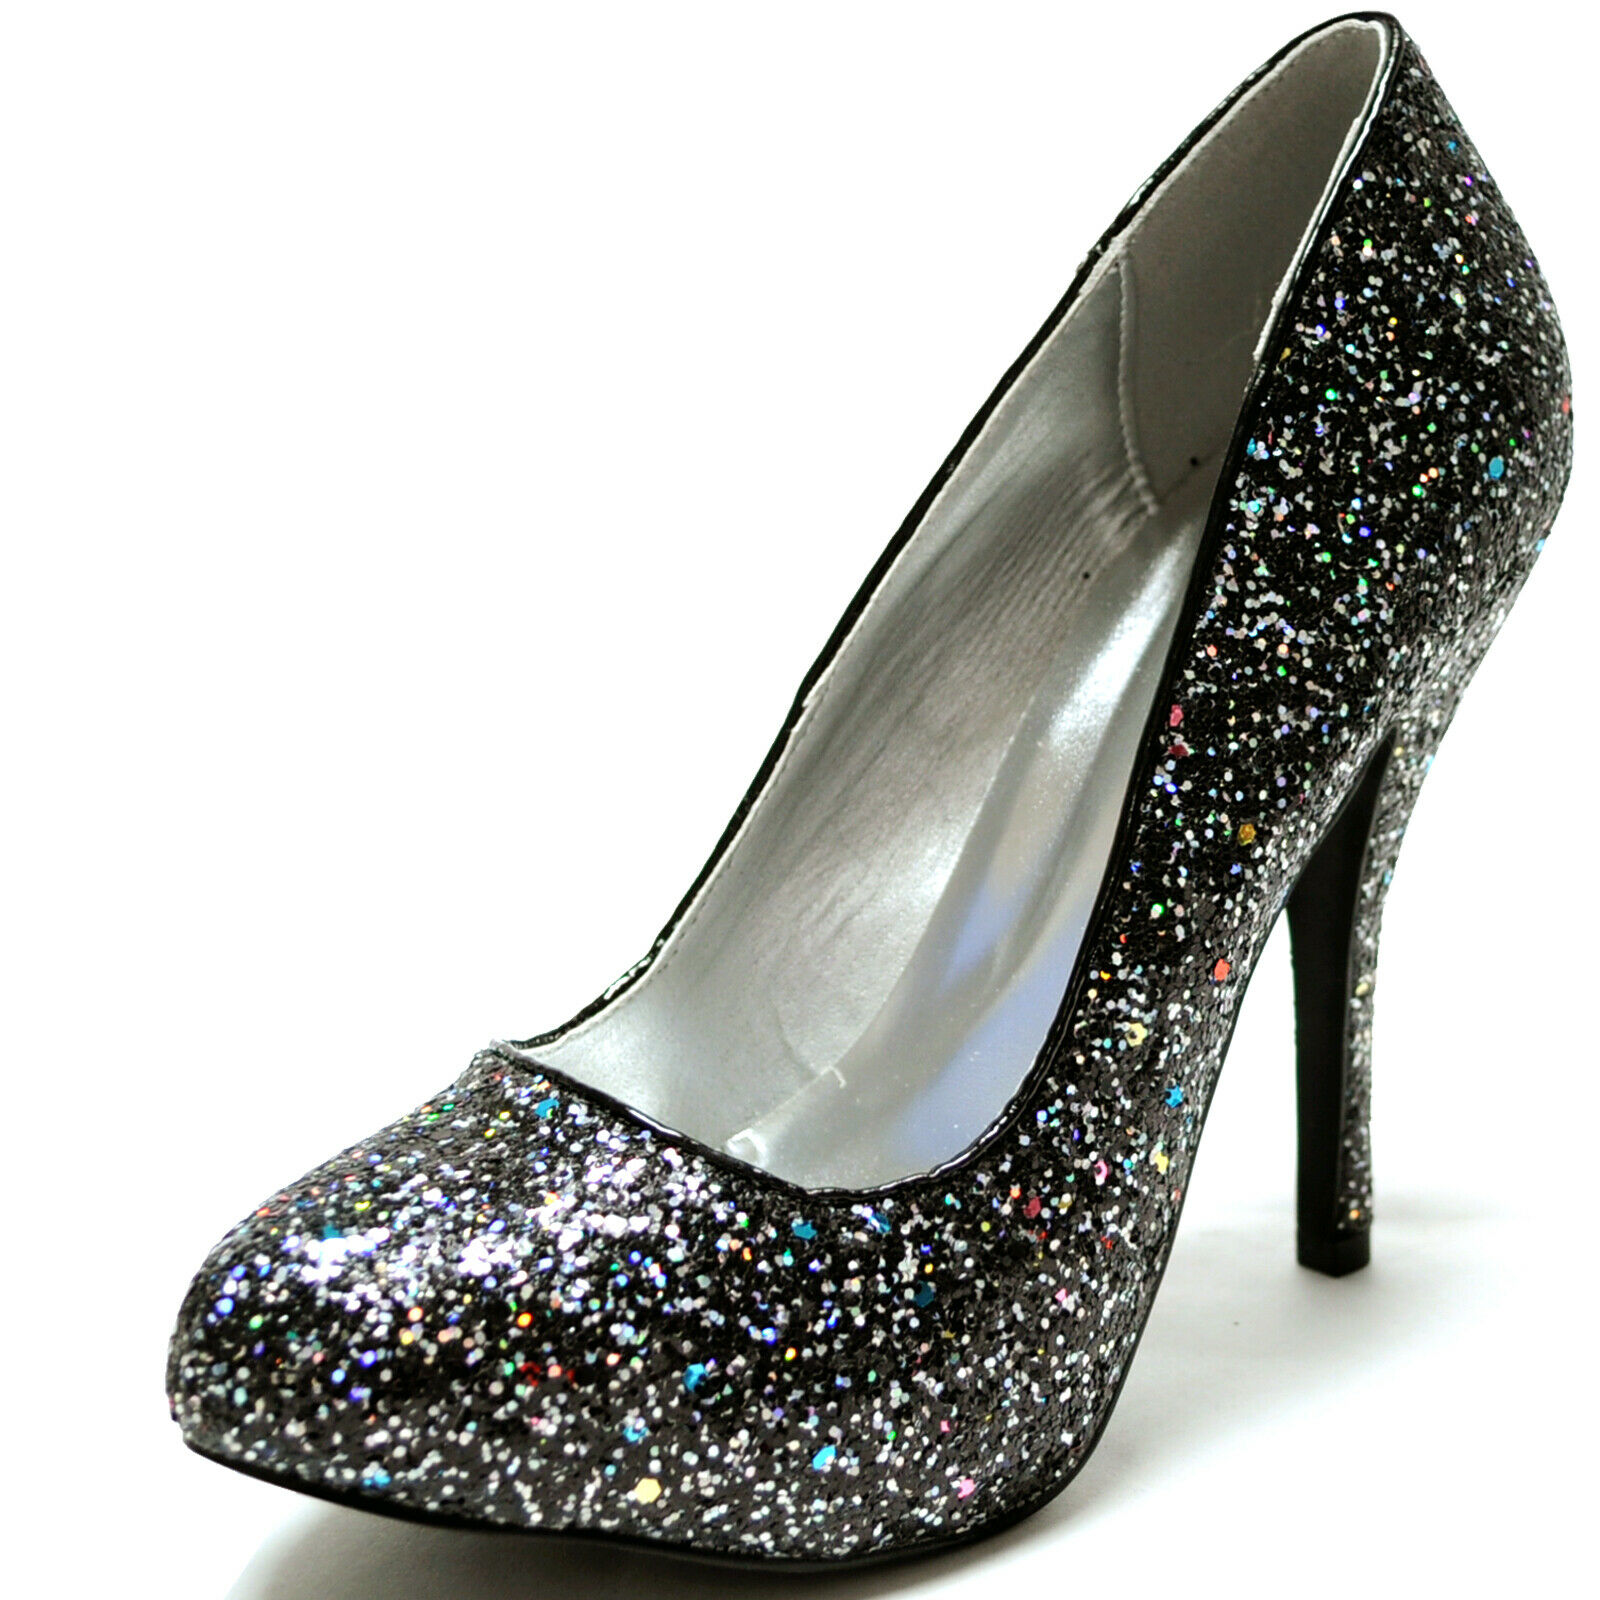 New Qupid women shoes formal evening pumps stilettos prom pa